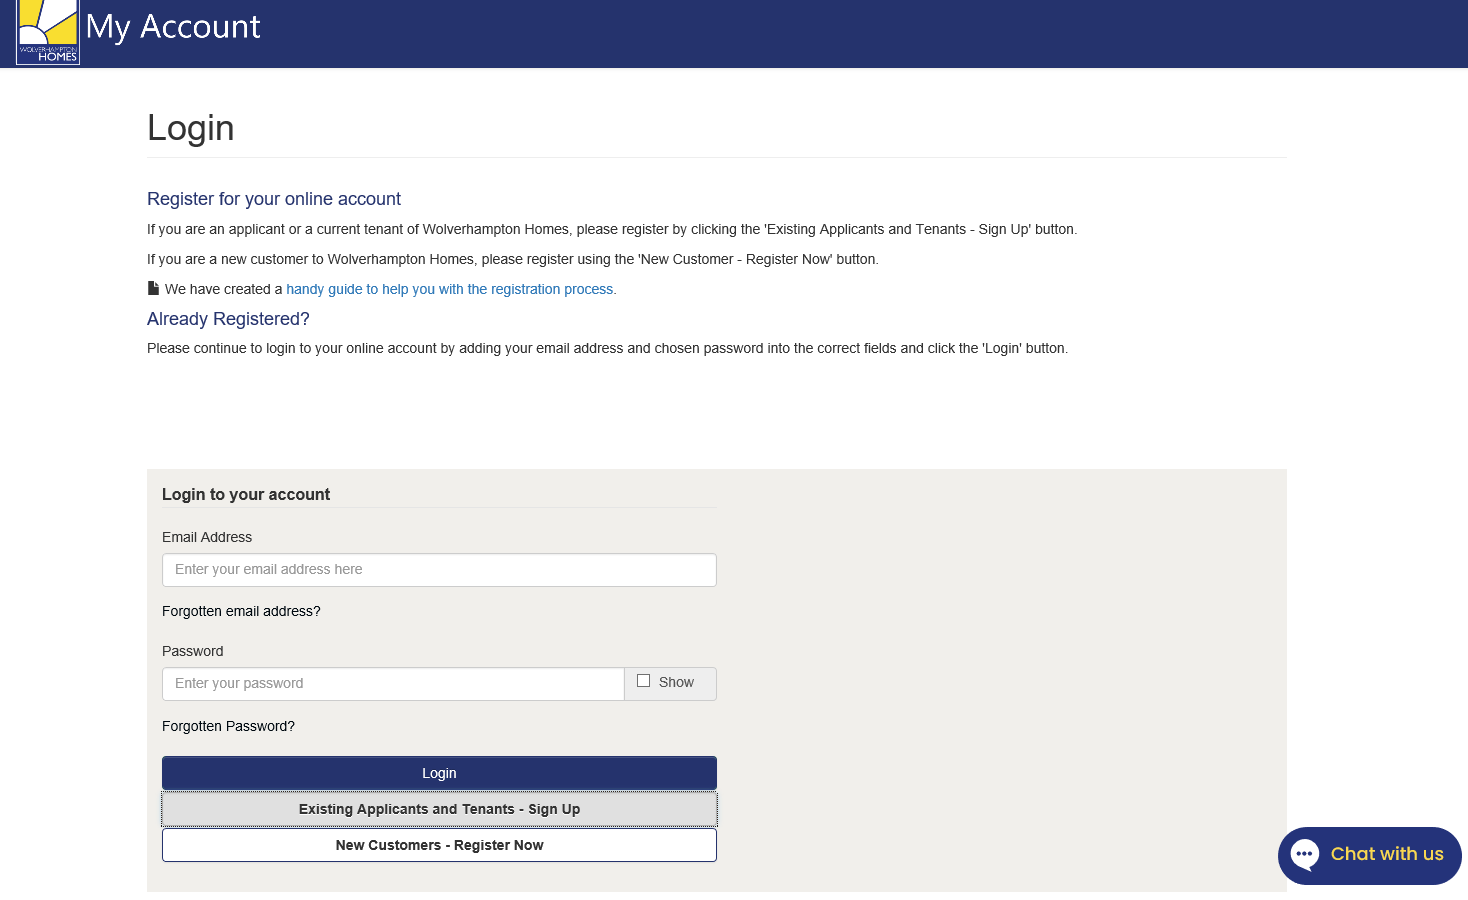 Screenshot of the login page